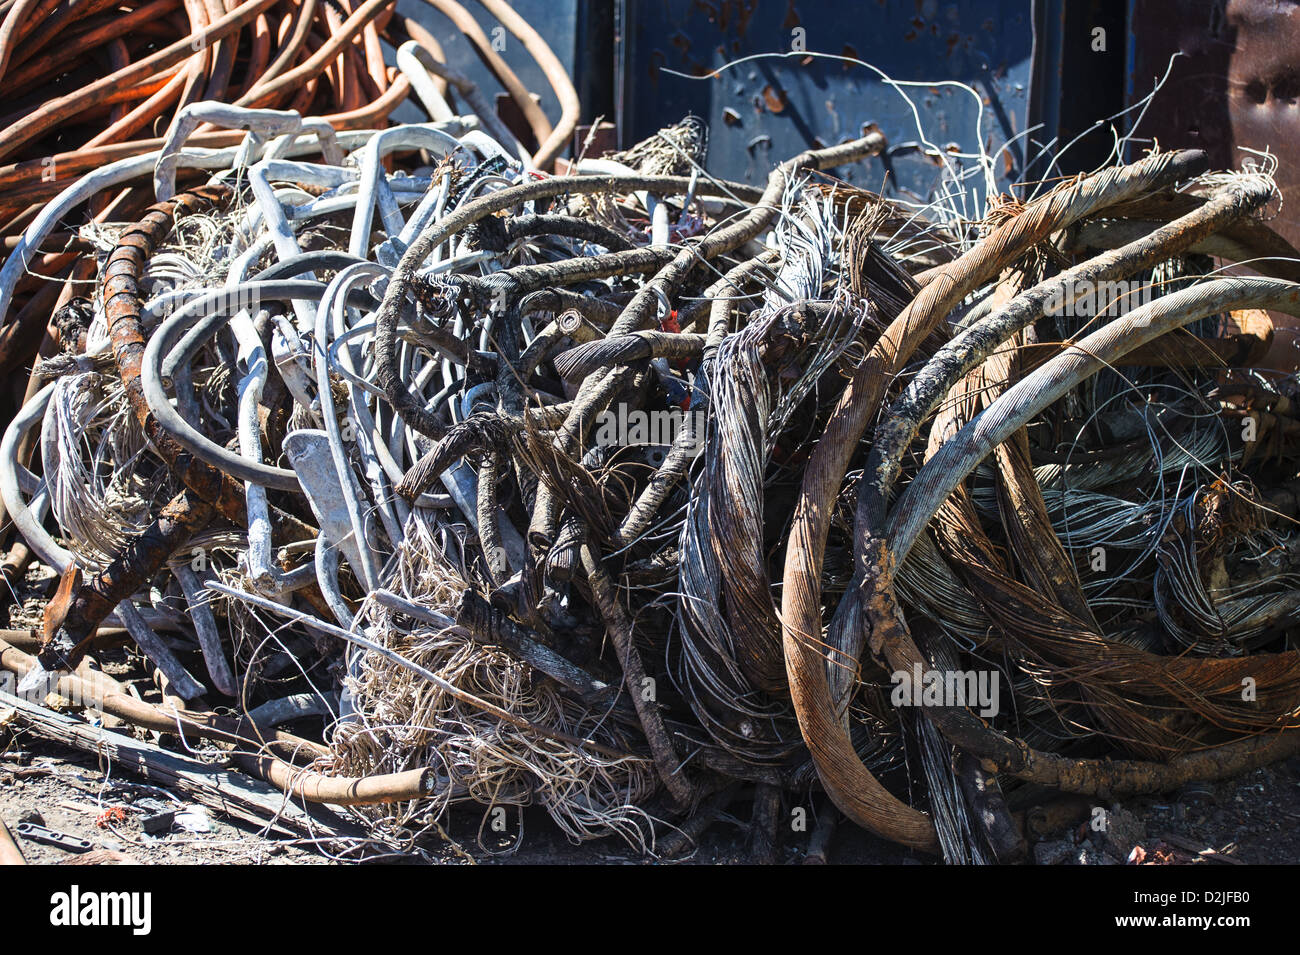 Copper Wires Stock Photos & Copper Wires Stock Images - Alamy